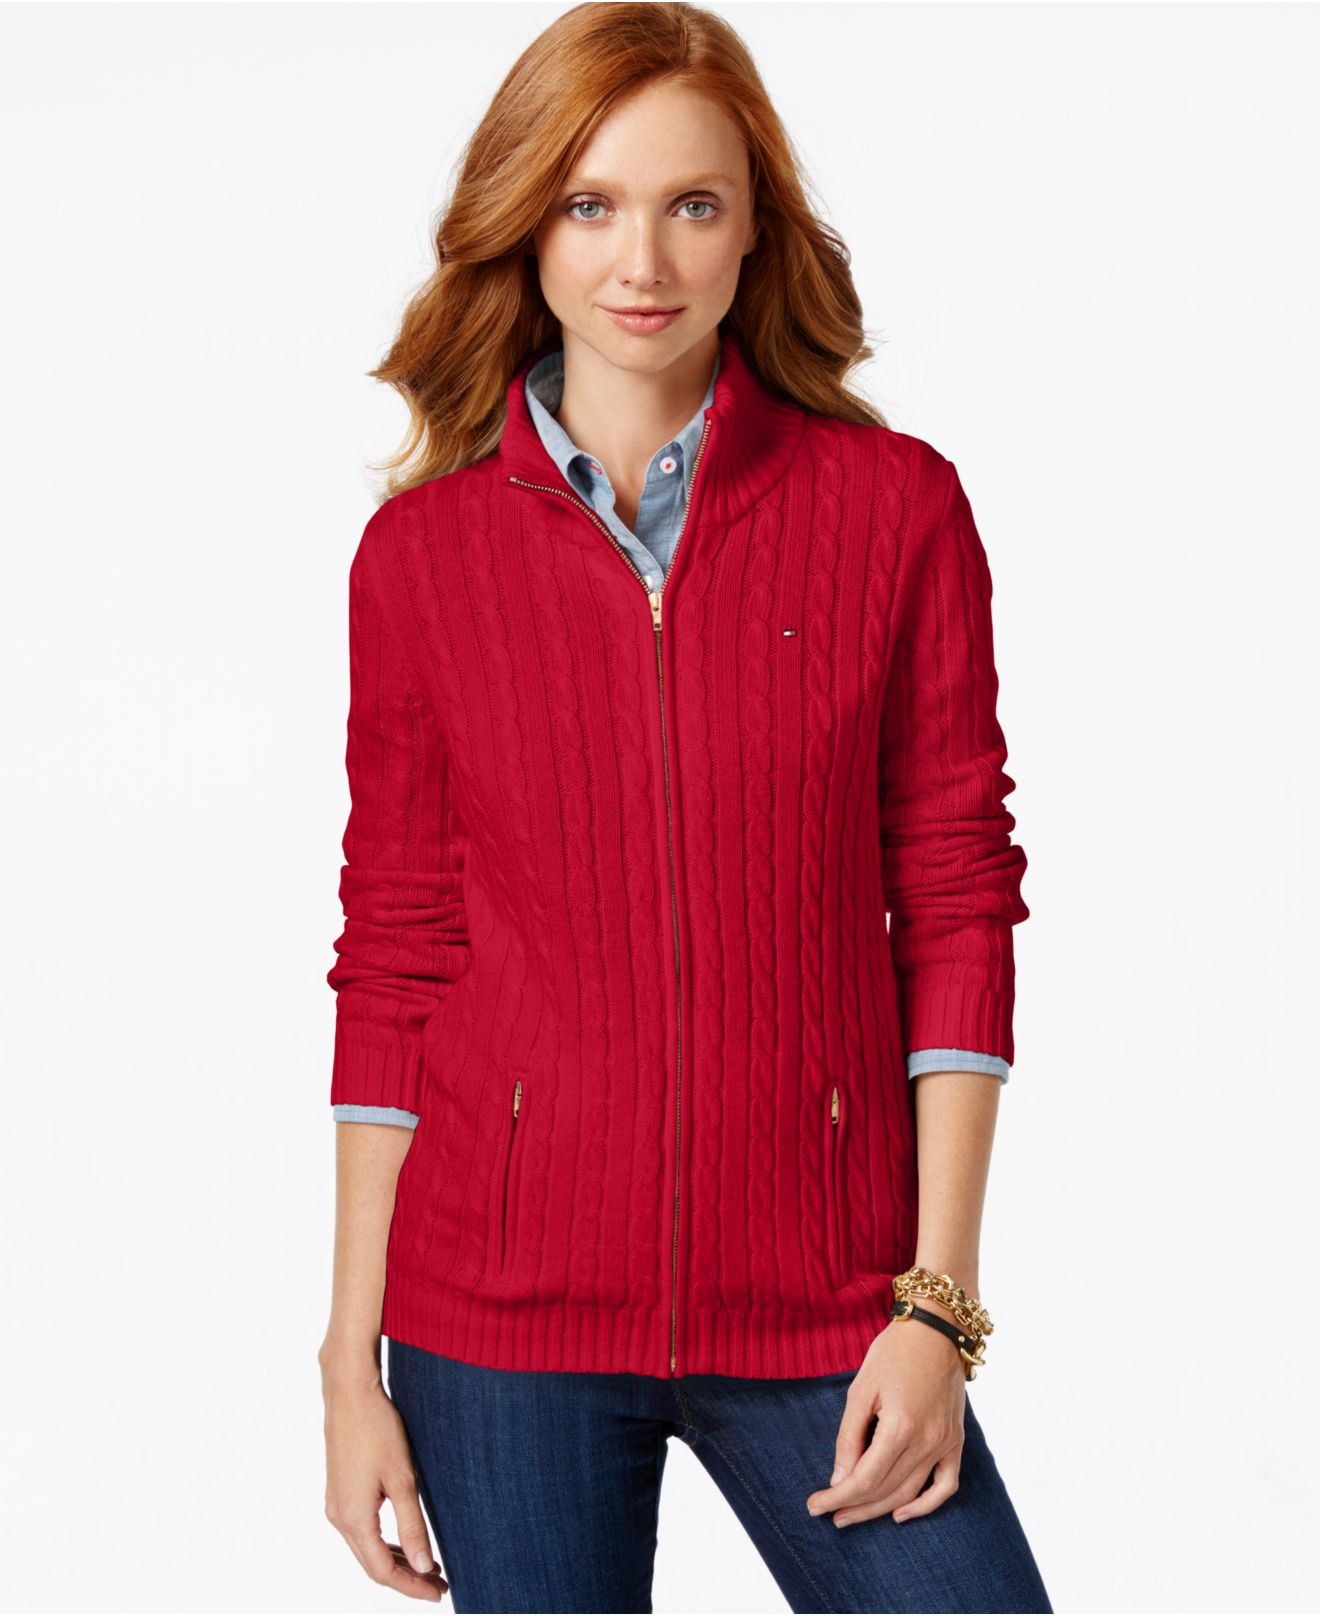 Knit Cardigan Awesome Red Cable Knit Cardigan Sweater Baggage Clothing Of Delightful 41 Ideas Knit Cardigan